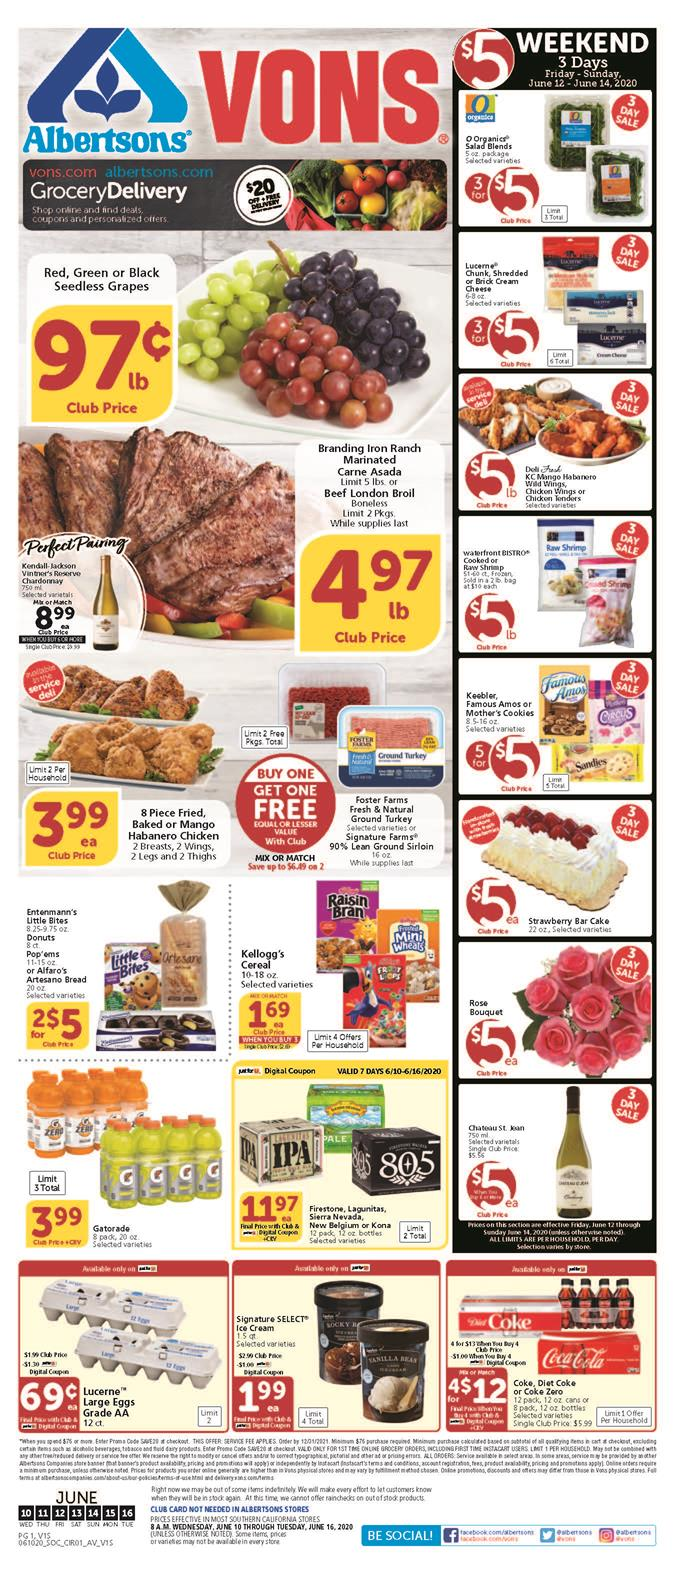 vons weekly ad jun 10 2020